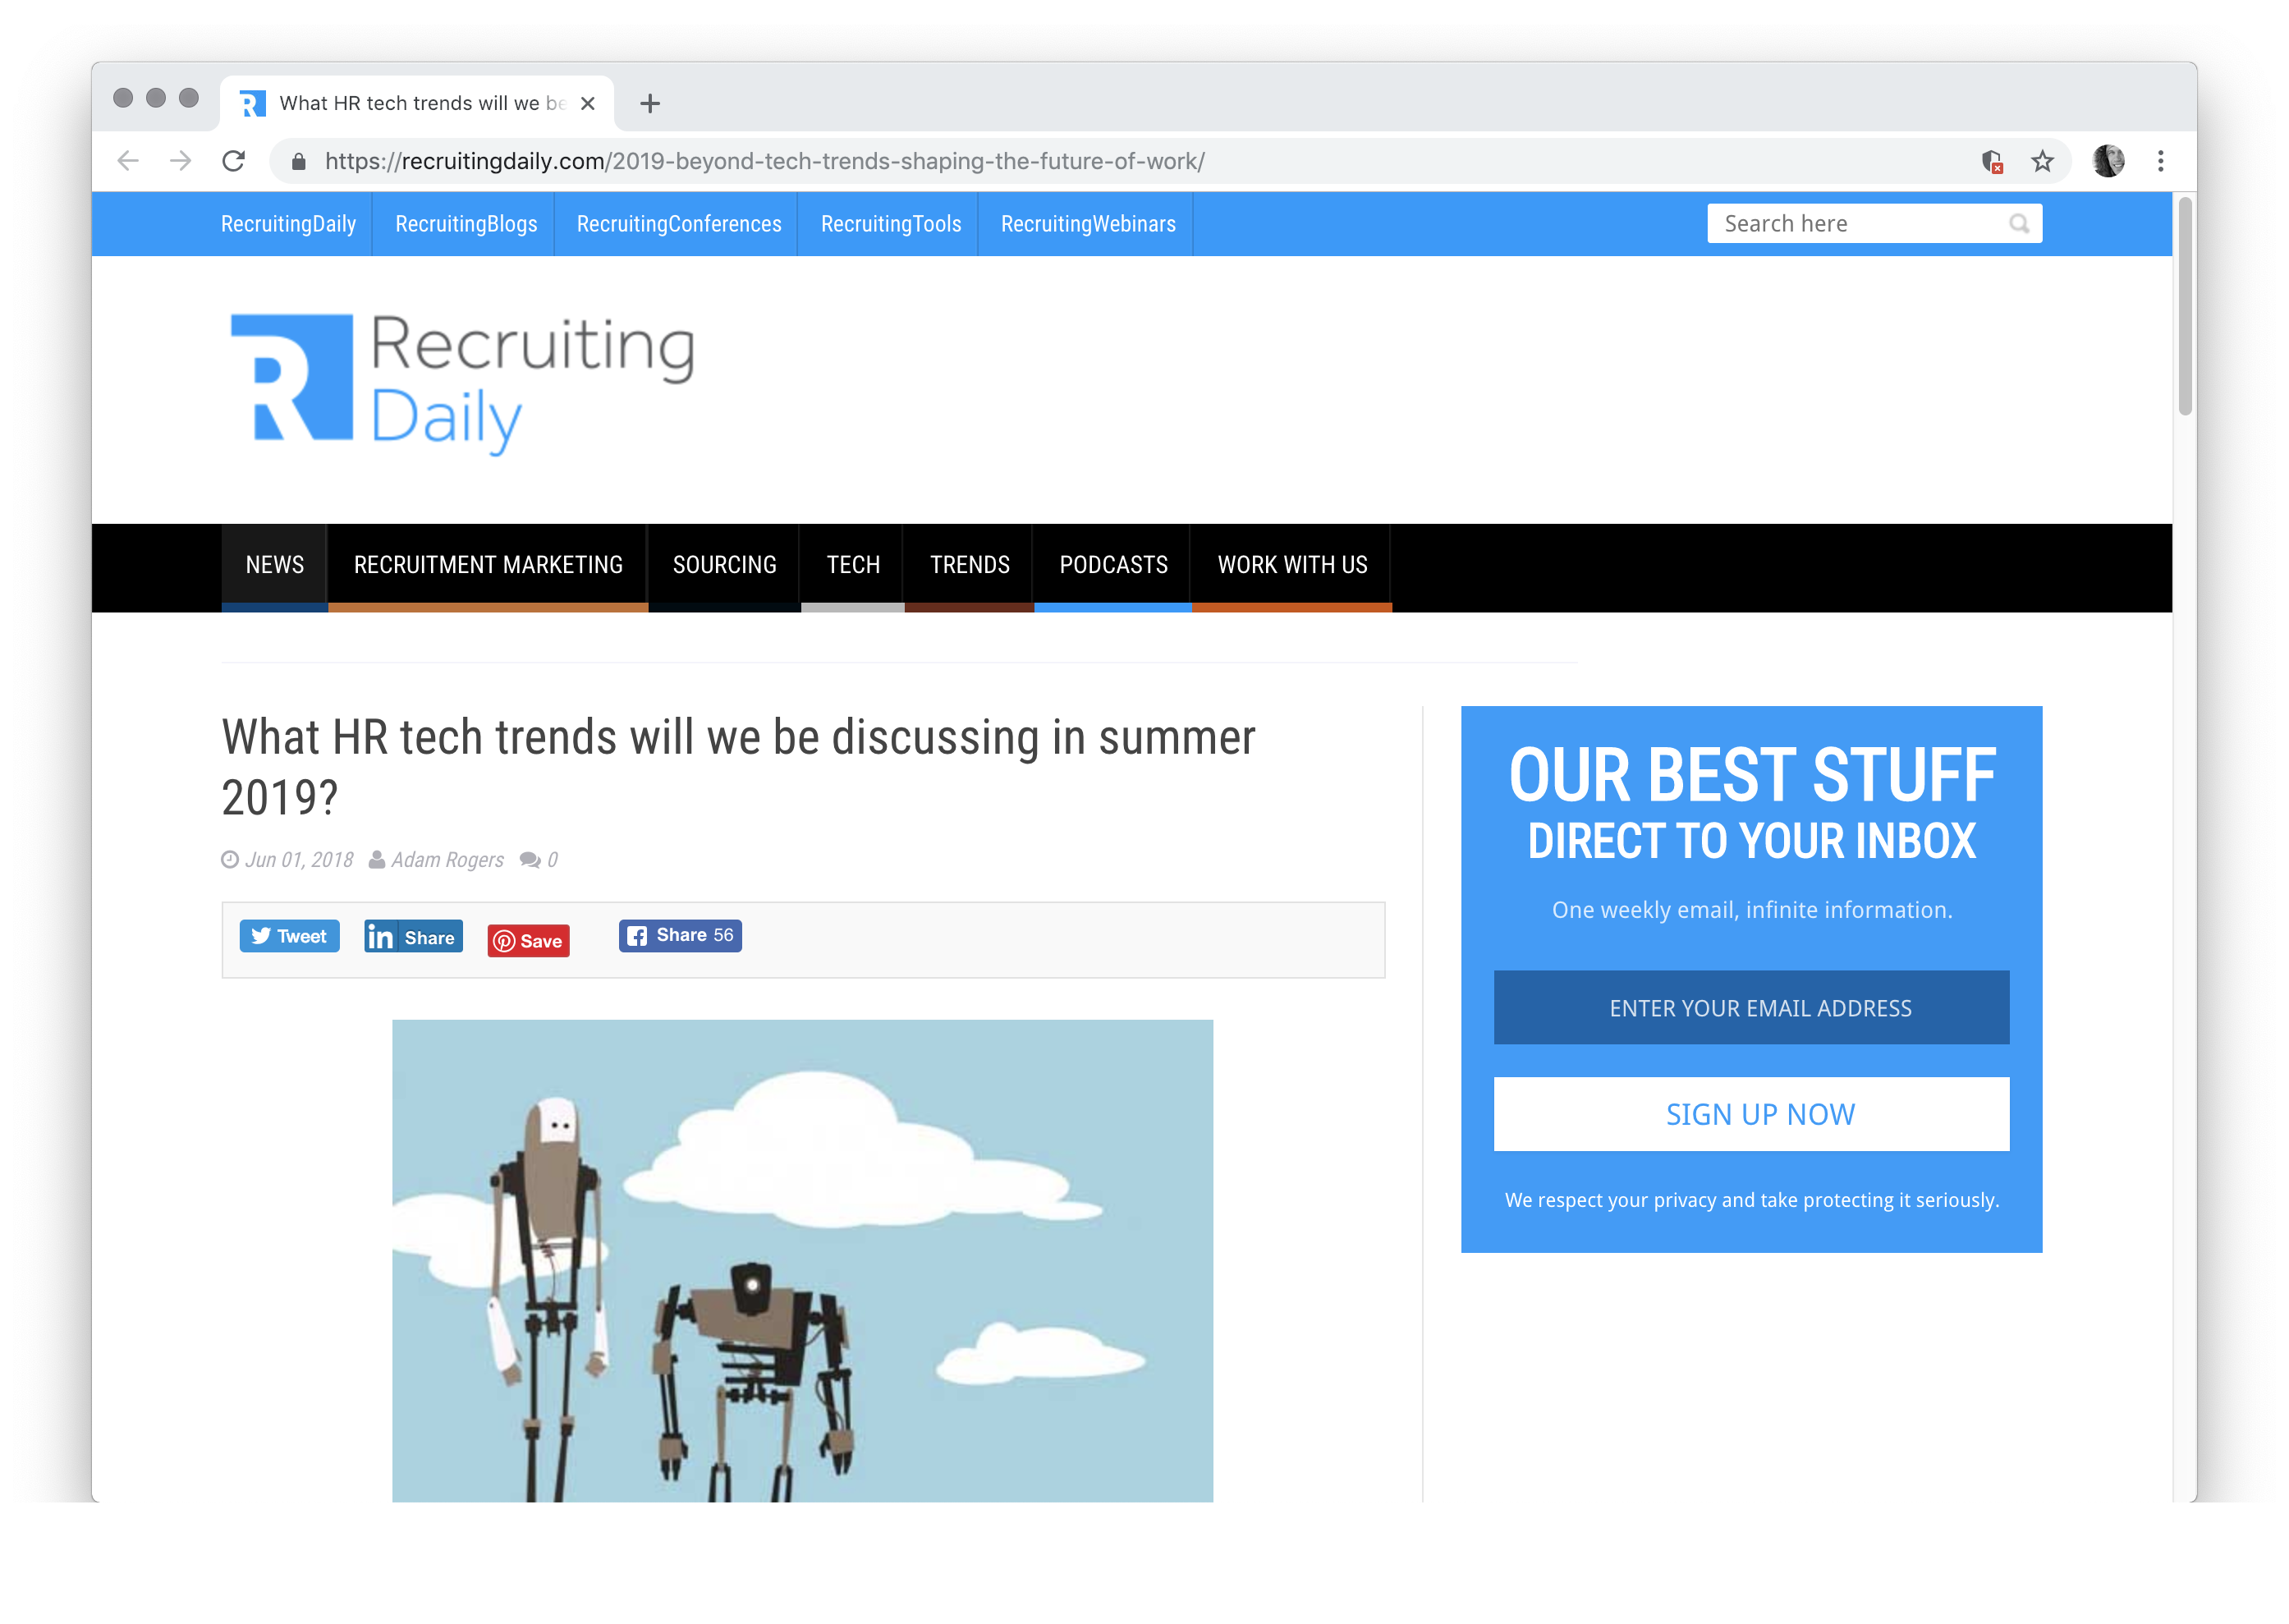 What HR tech trends will we be discussing in summer 2019? cakehr